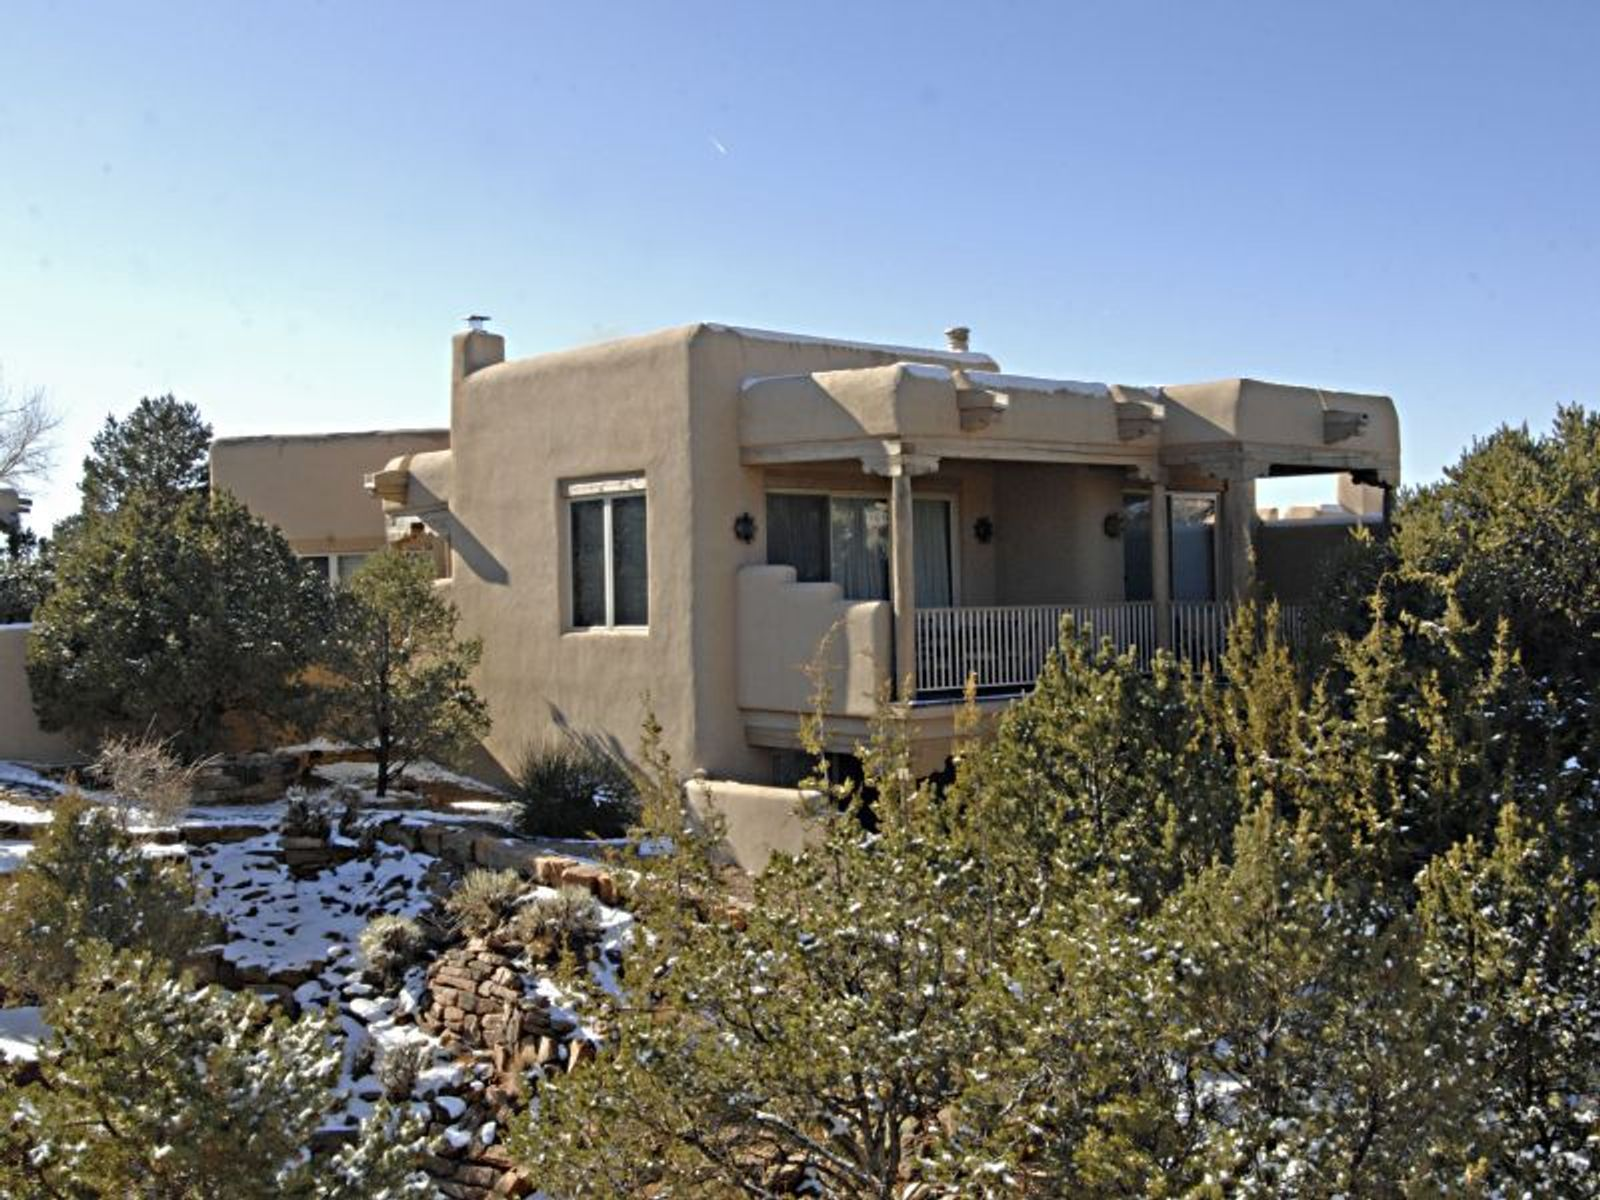 507 Los Nidos, Santa Fe NM Townhouse - Santa Fe Real Estate